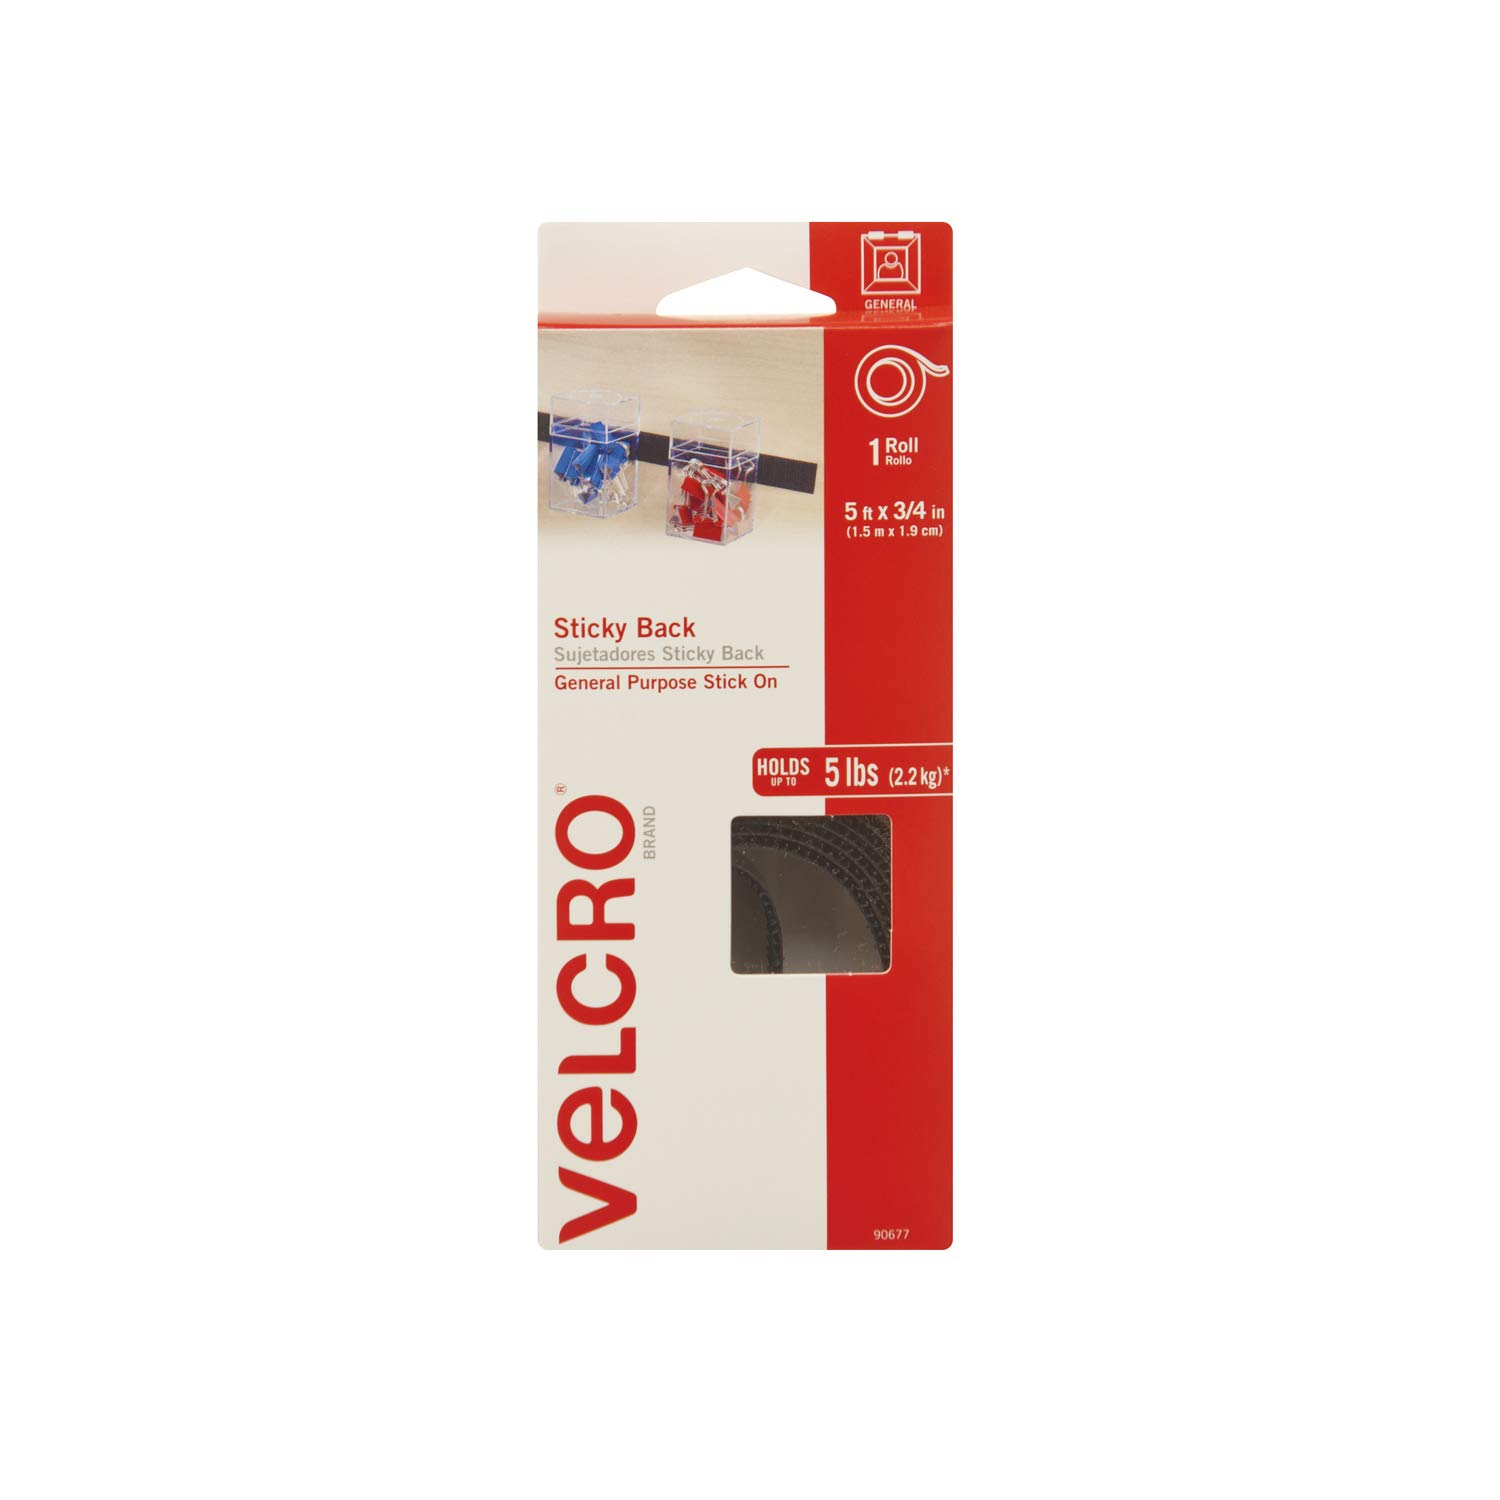 Amazon.com: VELCRO Brand - Sticky Back Hook and Loop Fasteners| Perfect for Home or Office | 5ft x 3/4in Tape | Black: Office Products